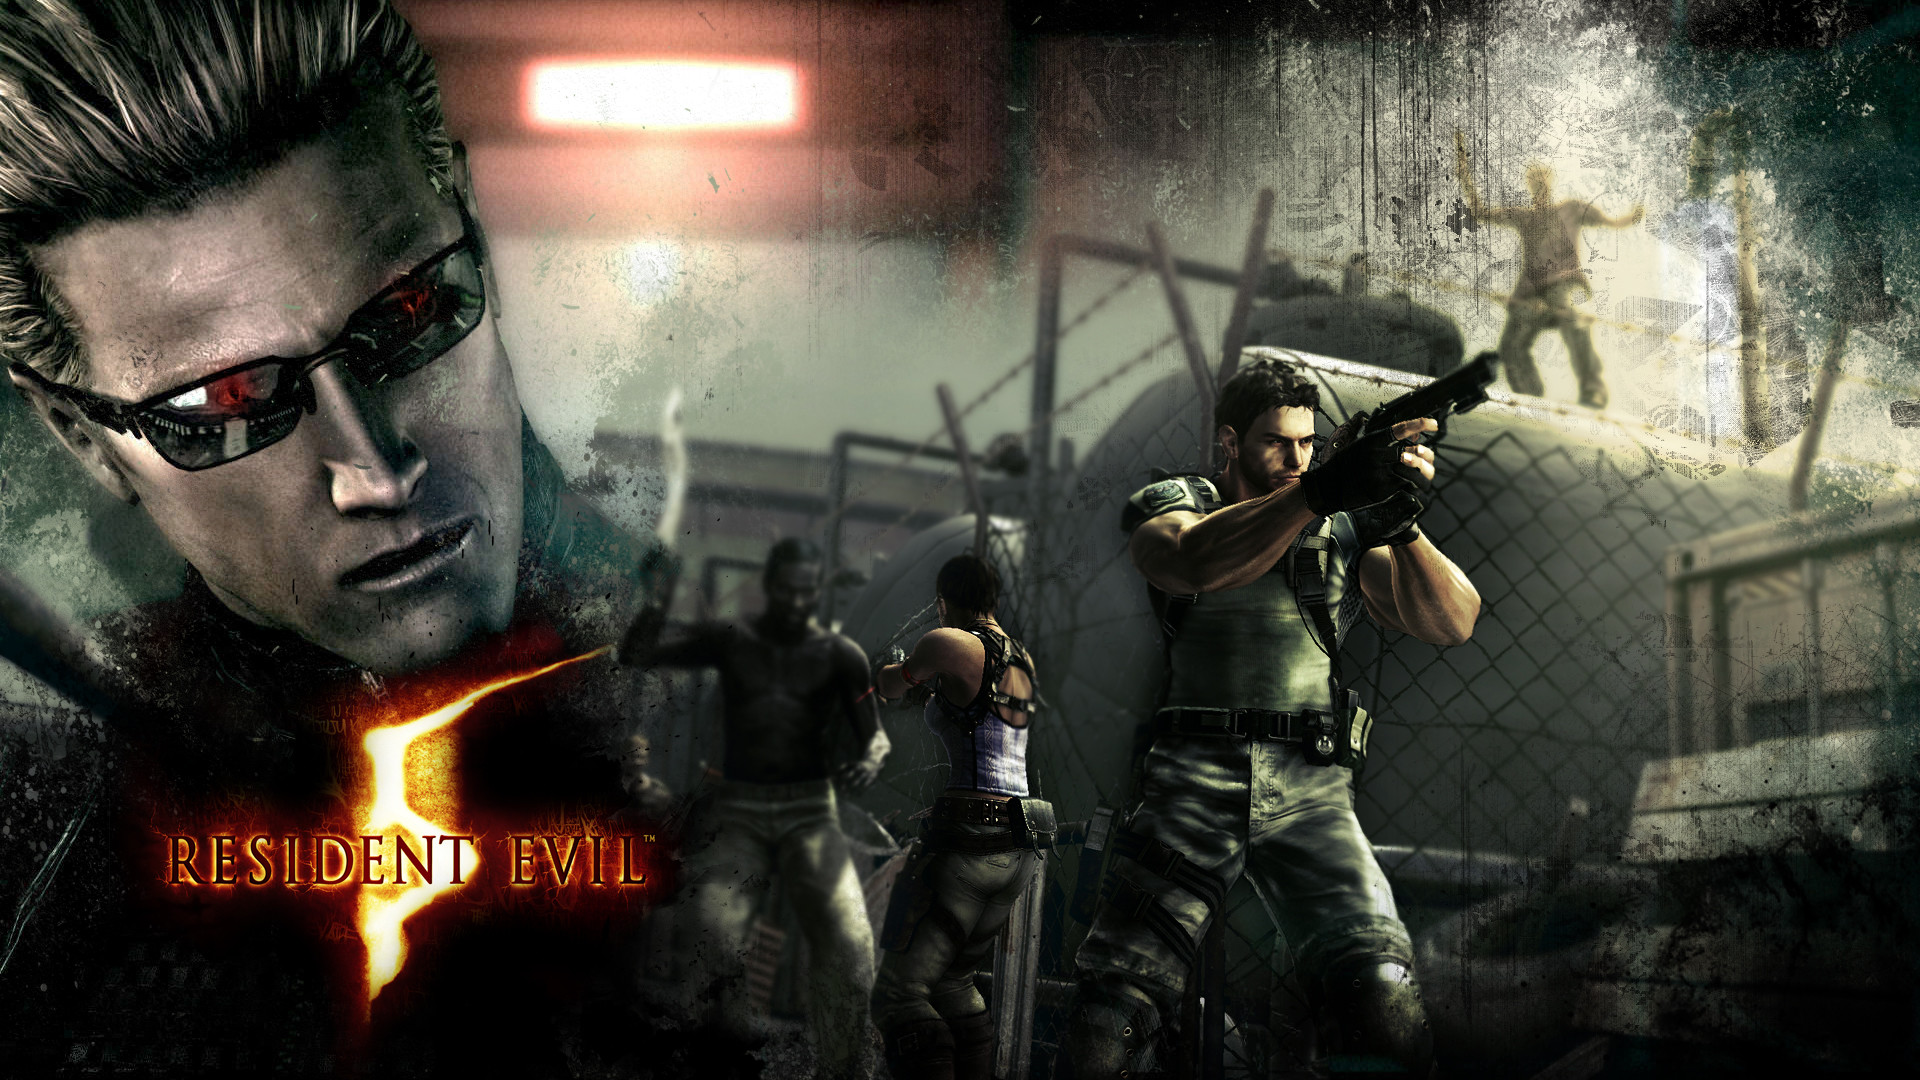 Resident Evil Movie Wallpaper 75 Pictures